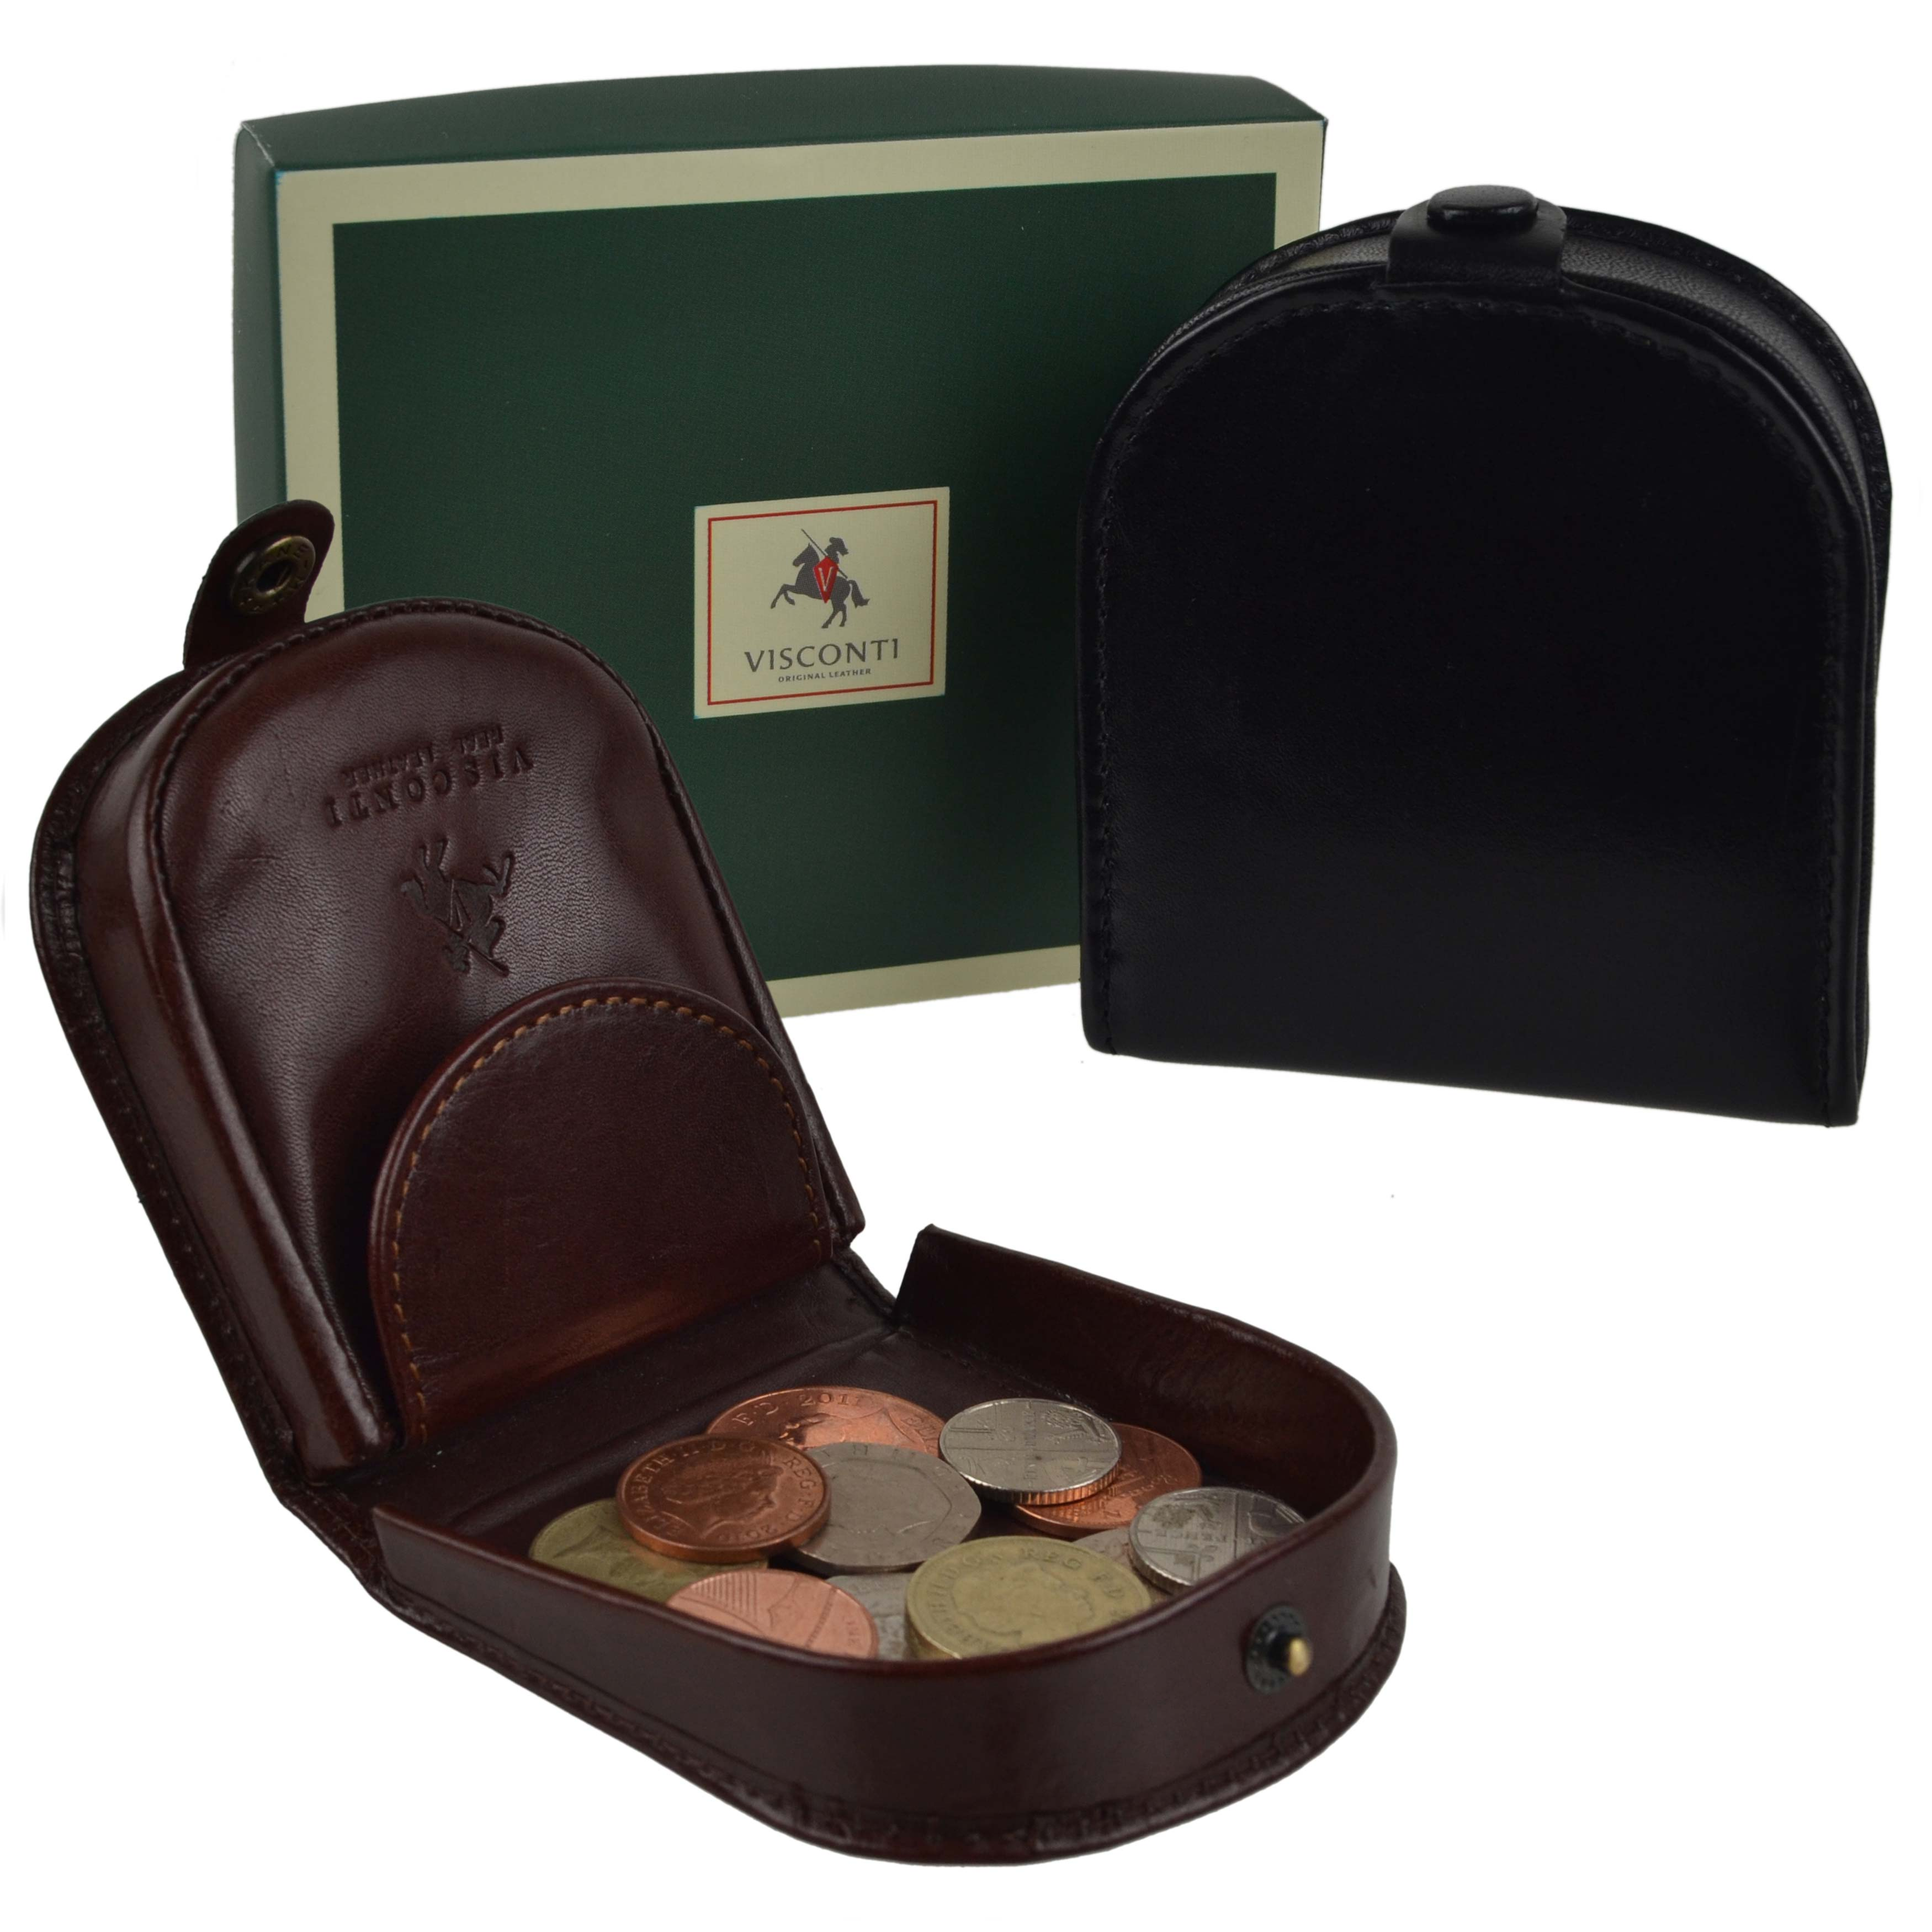 thumbnail 13 - Mens-Classic-Leather-Tabbed-Coin-Tray-by-Visconti-Monza-Collection-Gift-Boxed